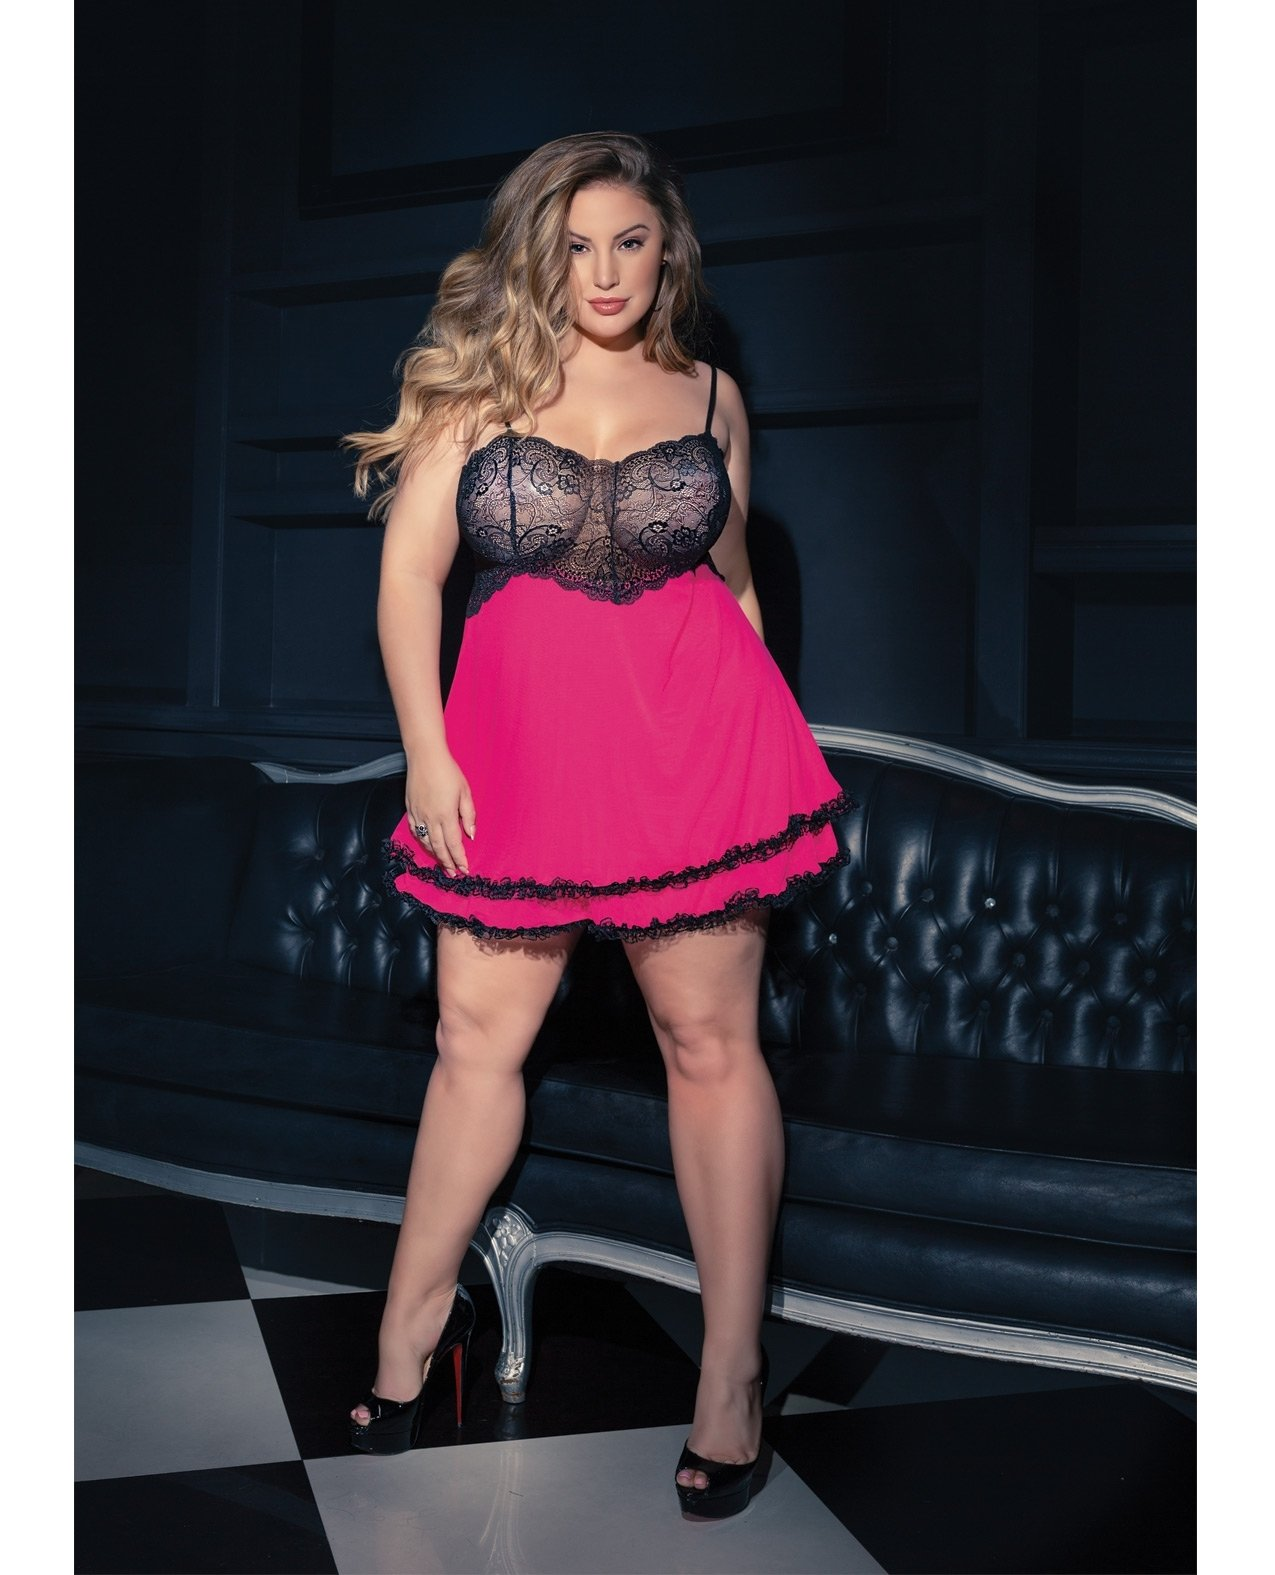 Scallop Stretch Lace Babydoll w/Layered Mesh Skirt G-String Hot Pink/Black OS/XL